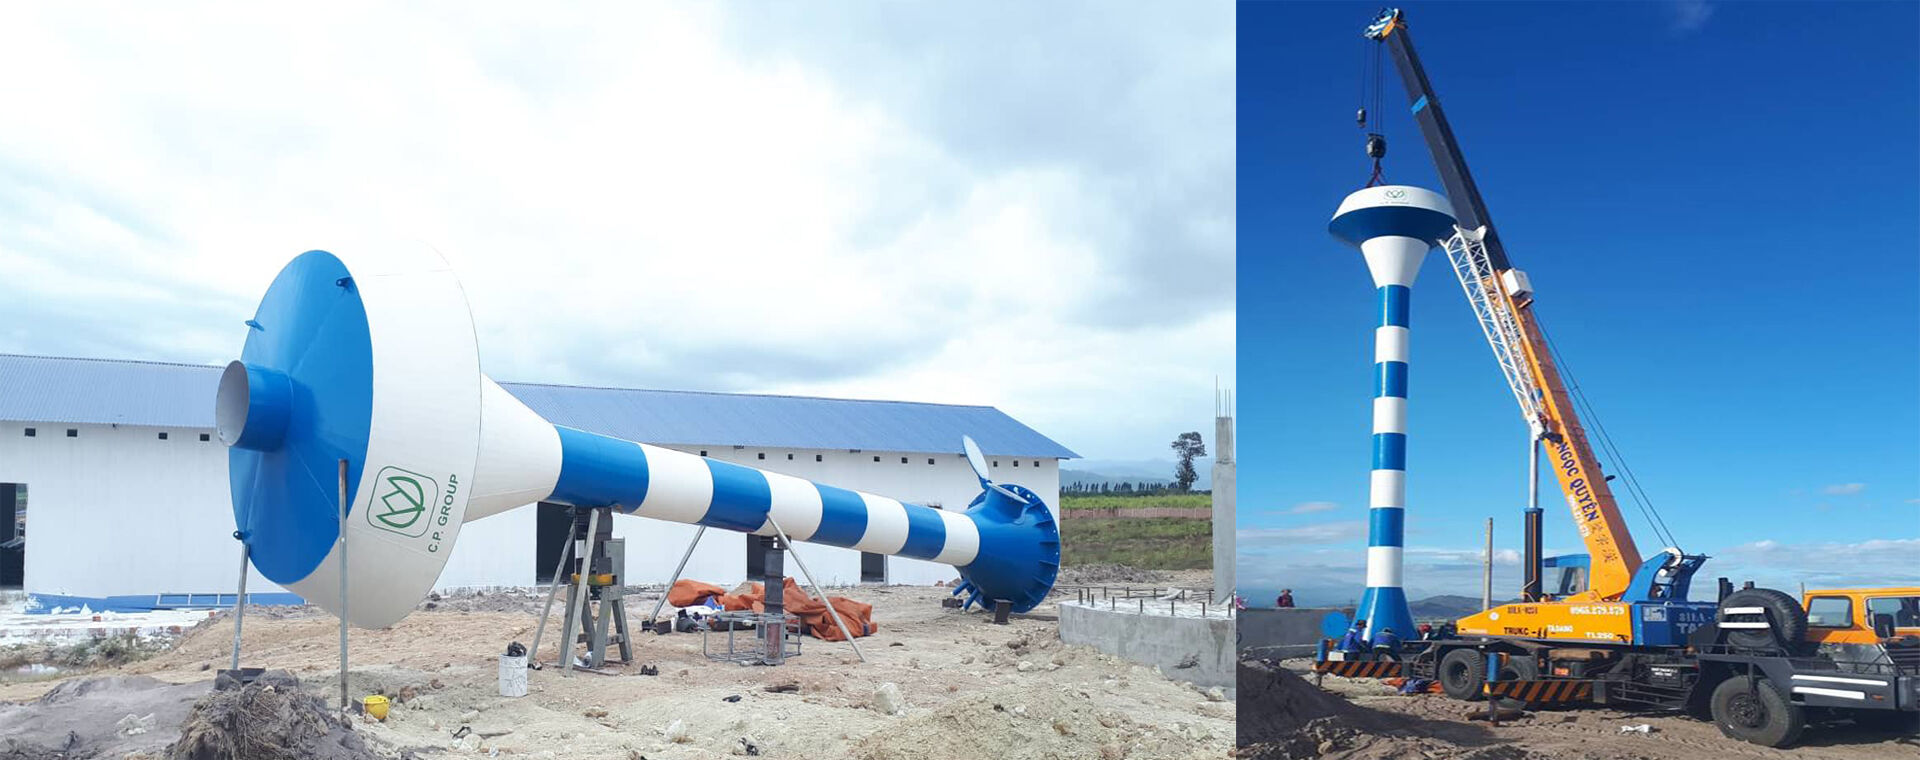 Manufacture and Install Water Tower